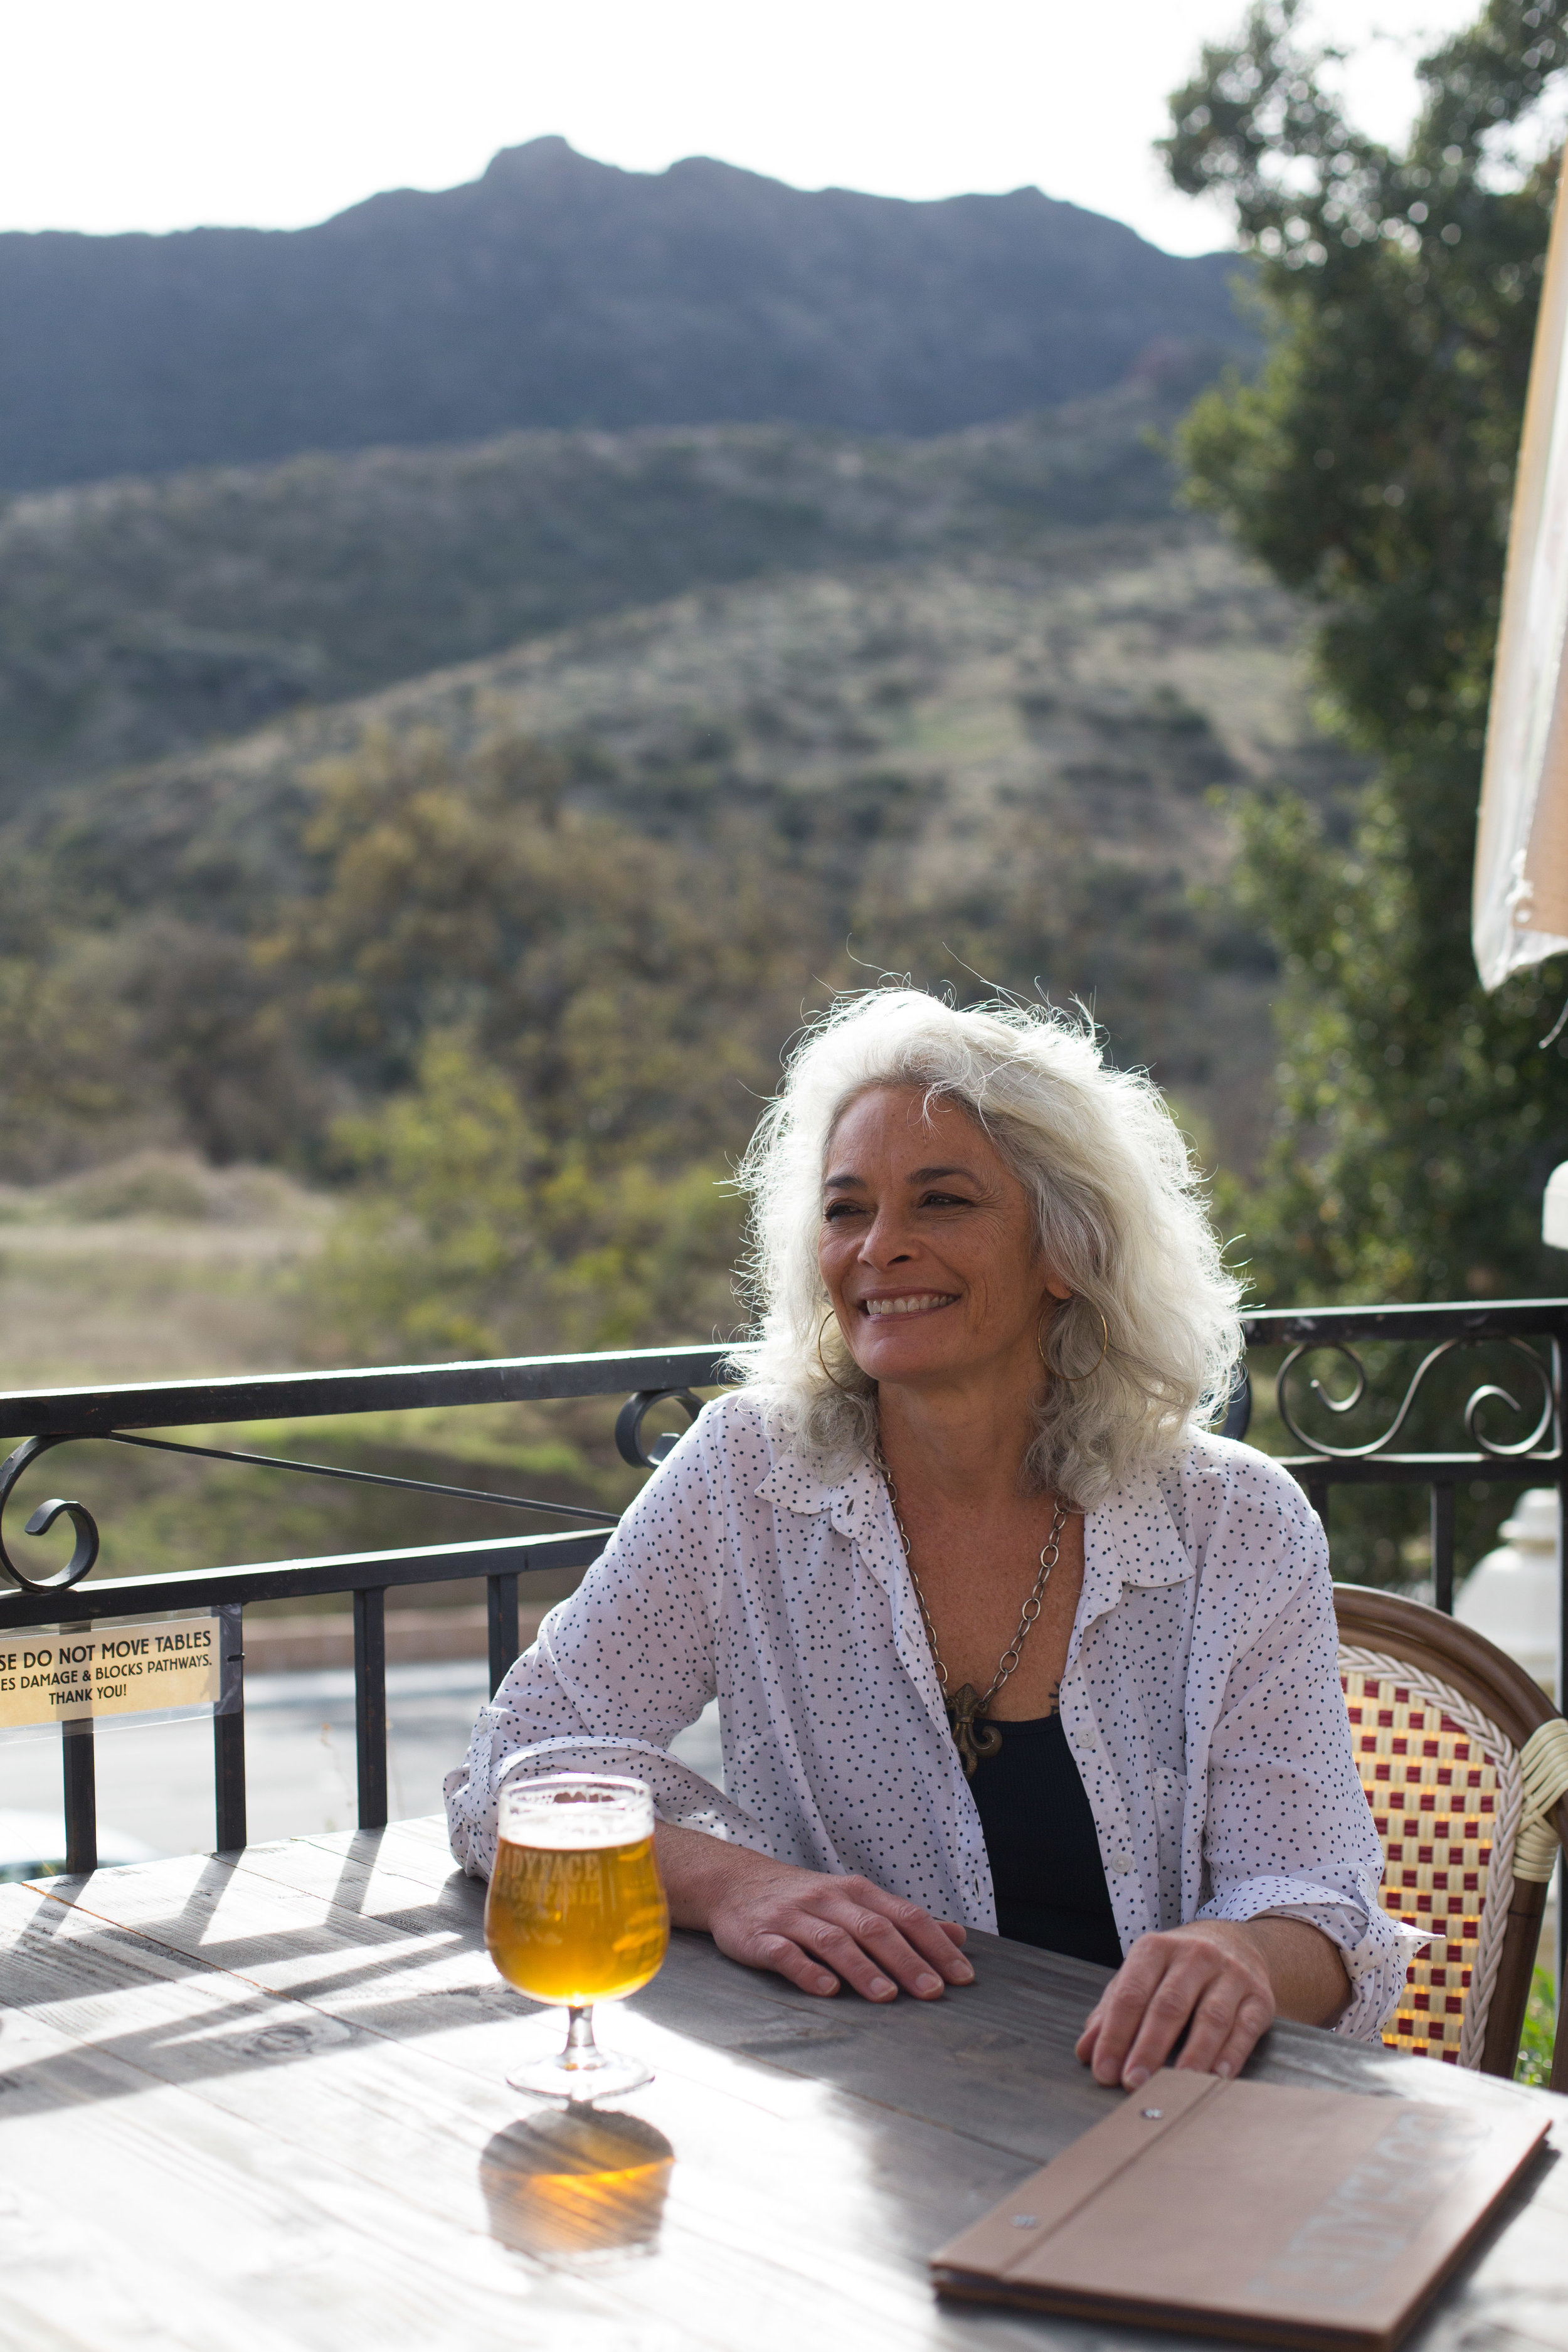 Co-Founder of LadyFace Ale, Cyrena Nouzille, for LAist